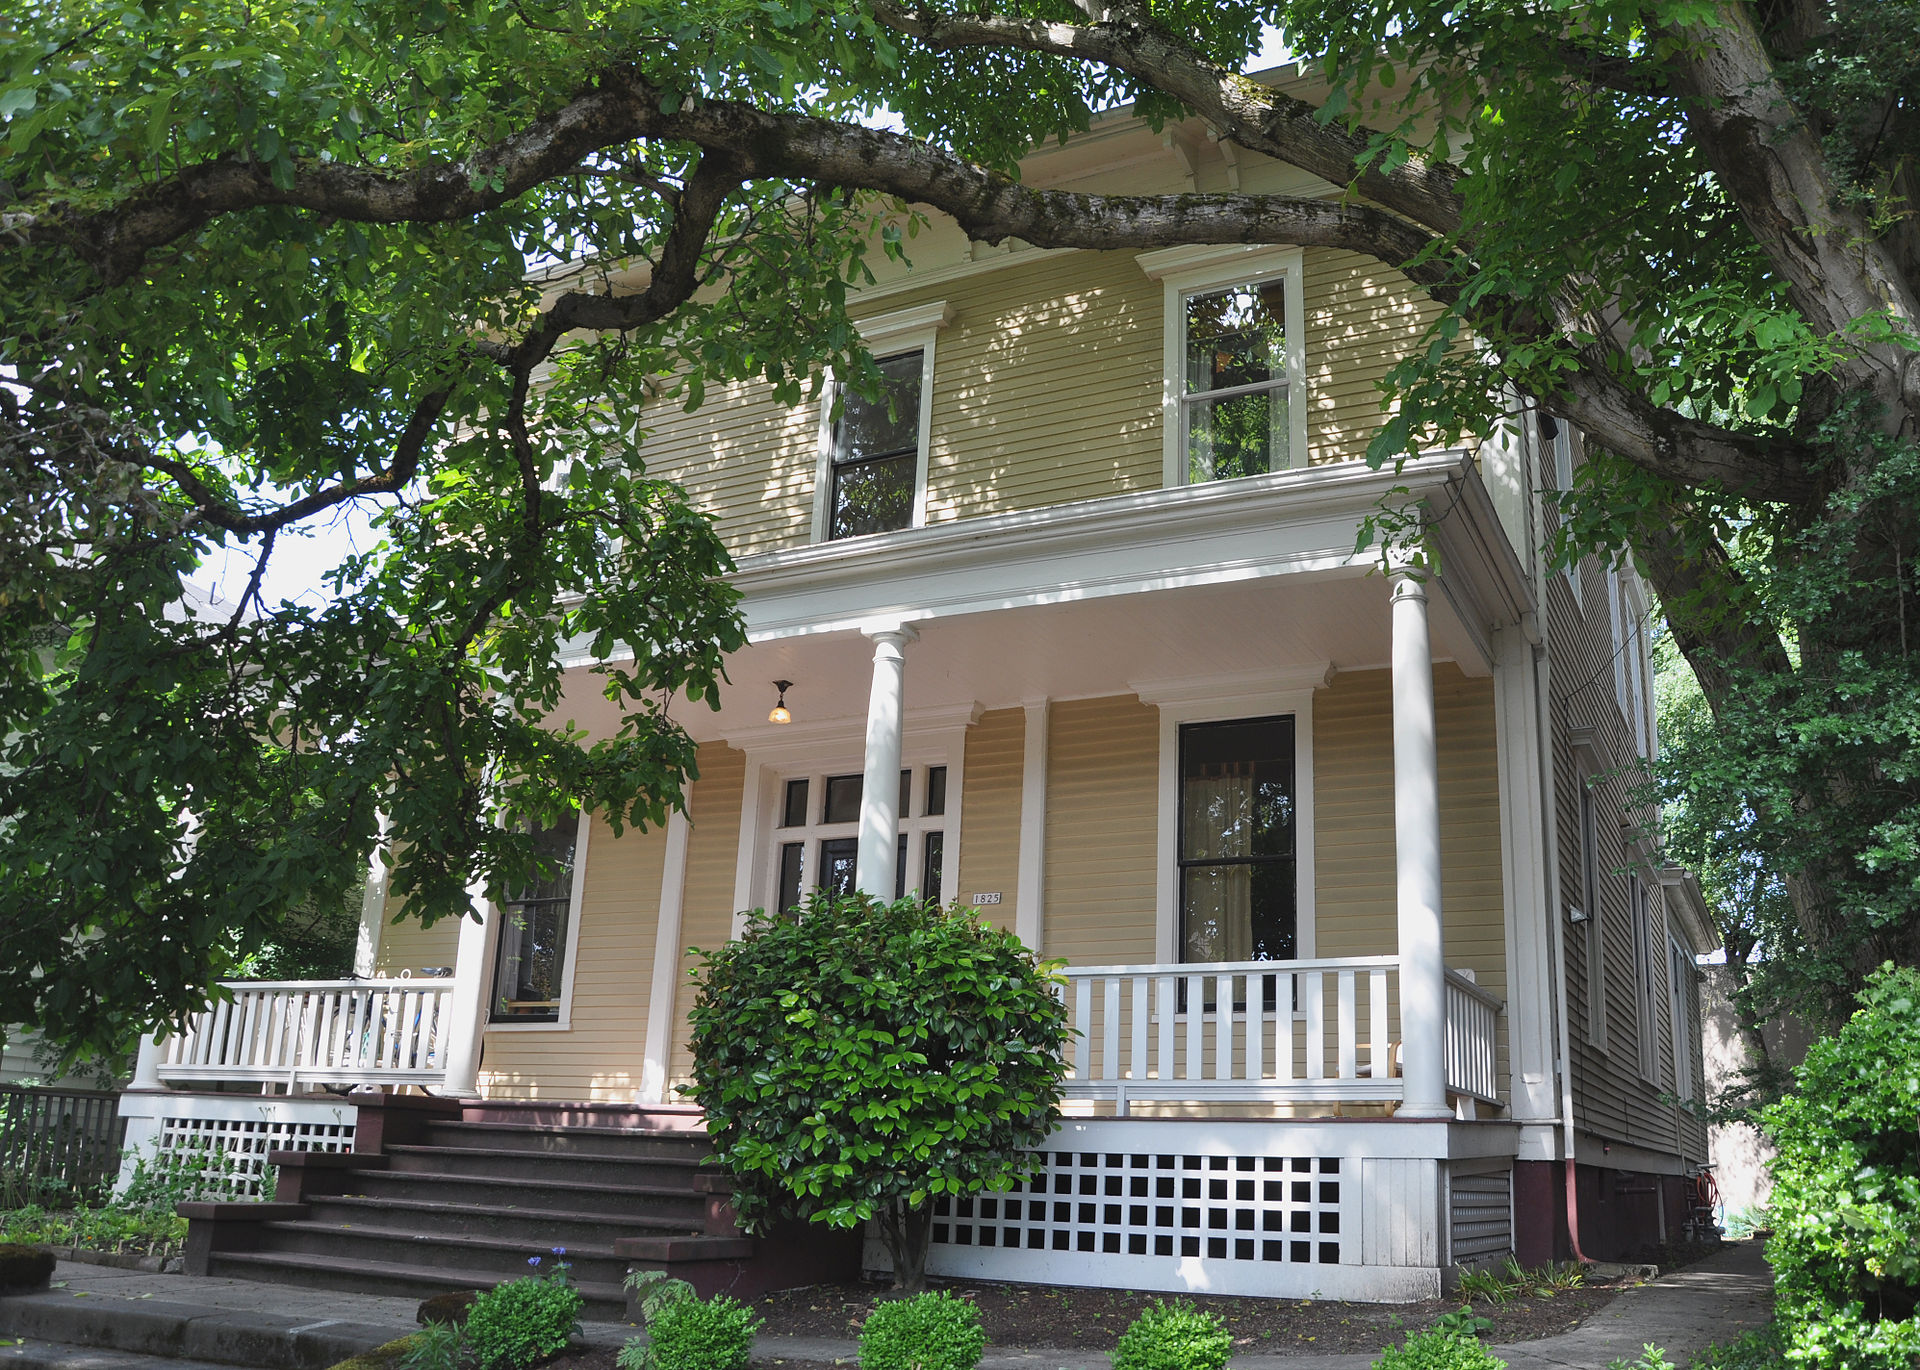 James B. Stephens House